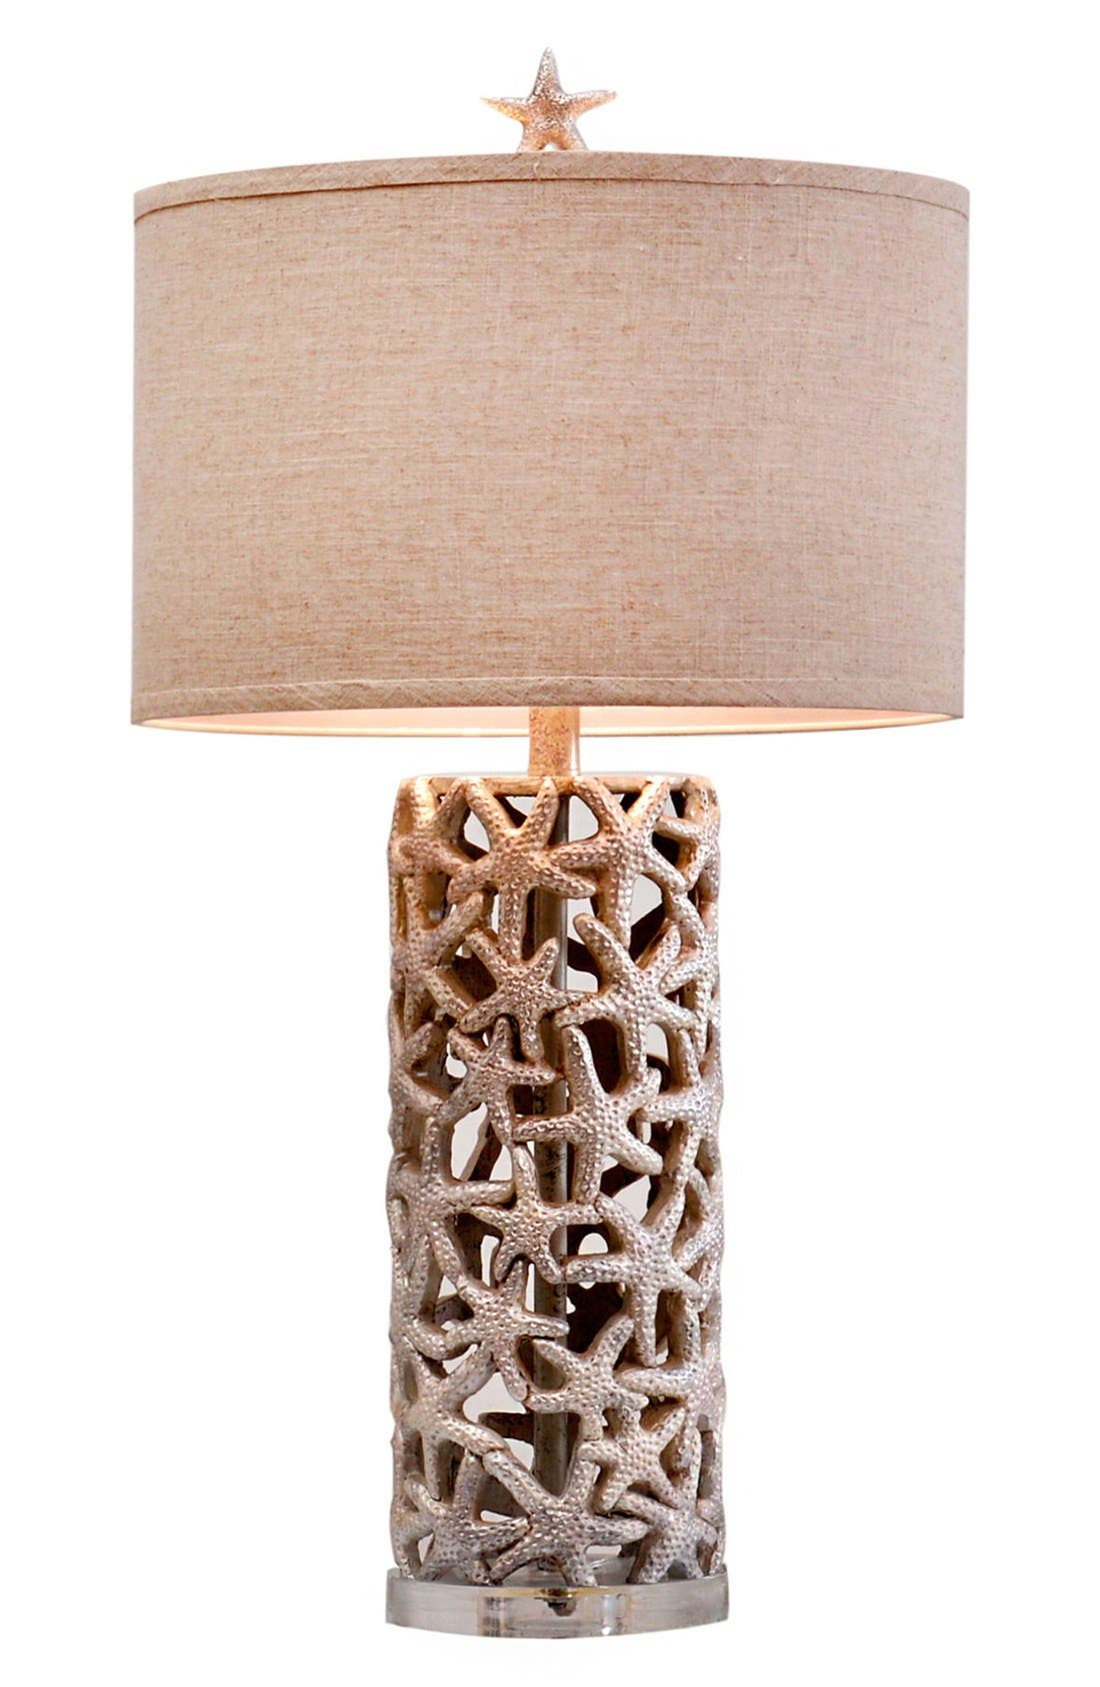 JAlexander 'Silver Starfish' Table Lamp,                             Main thumbnail 1, color,                             040